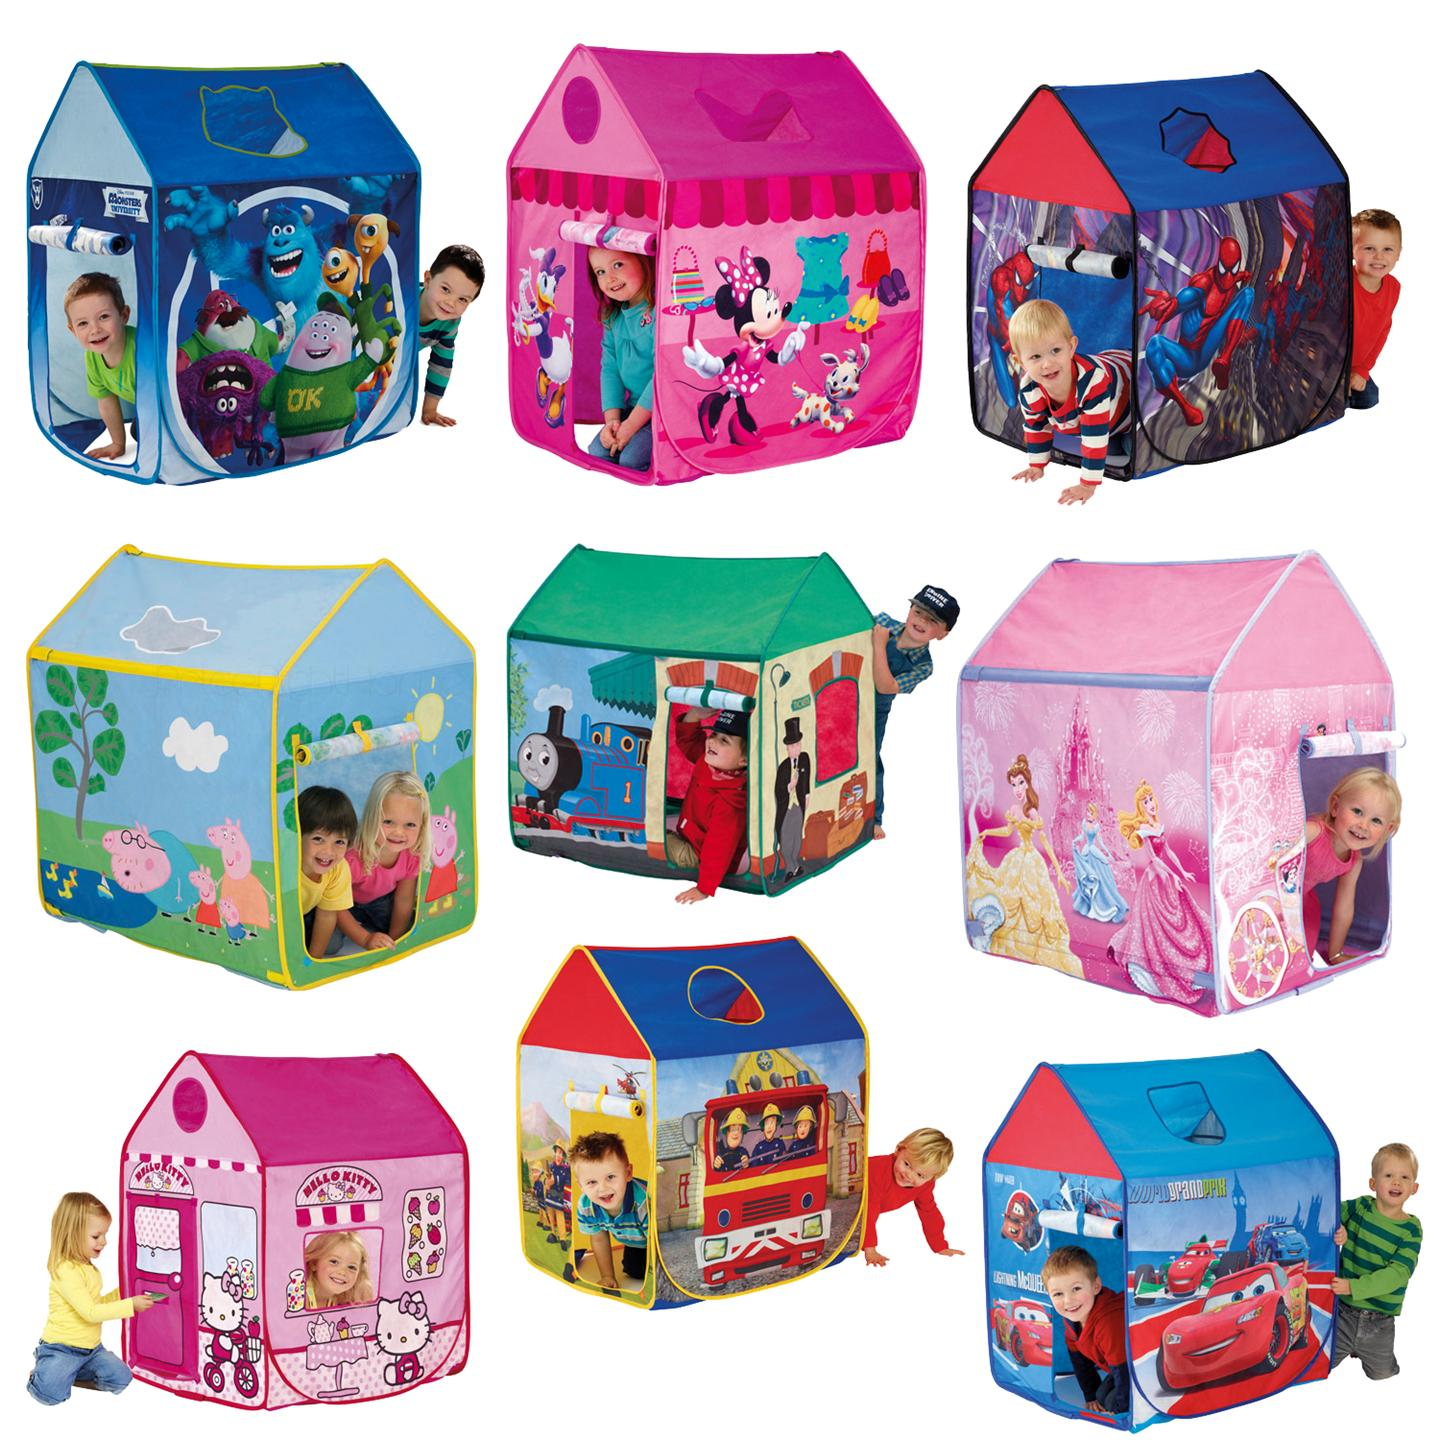 spielzelt kinder disney und figuren wendy haus pop up zelt ebay. Black Bedroom Furniture Sets. Home Design Ideas